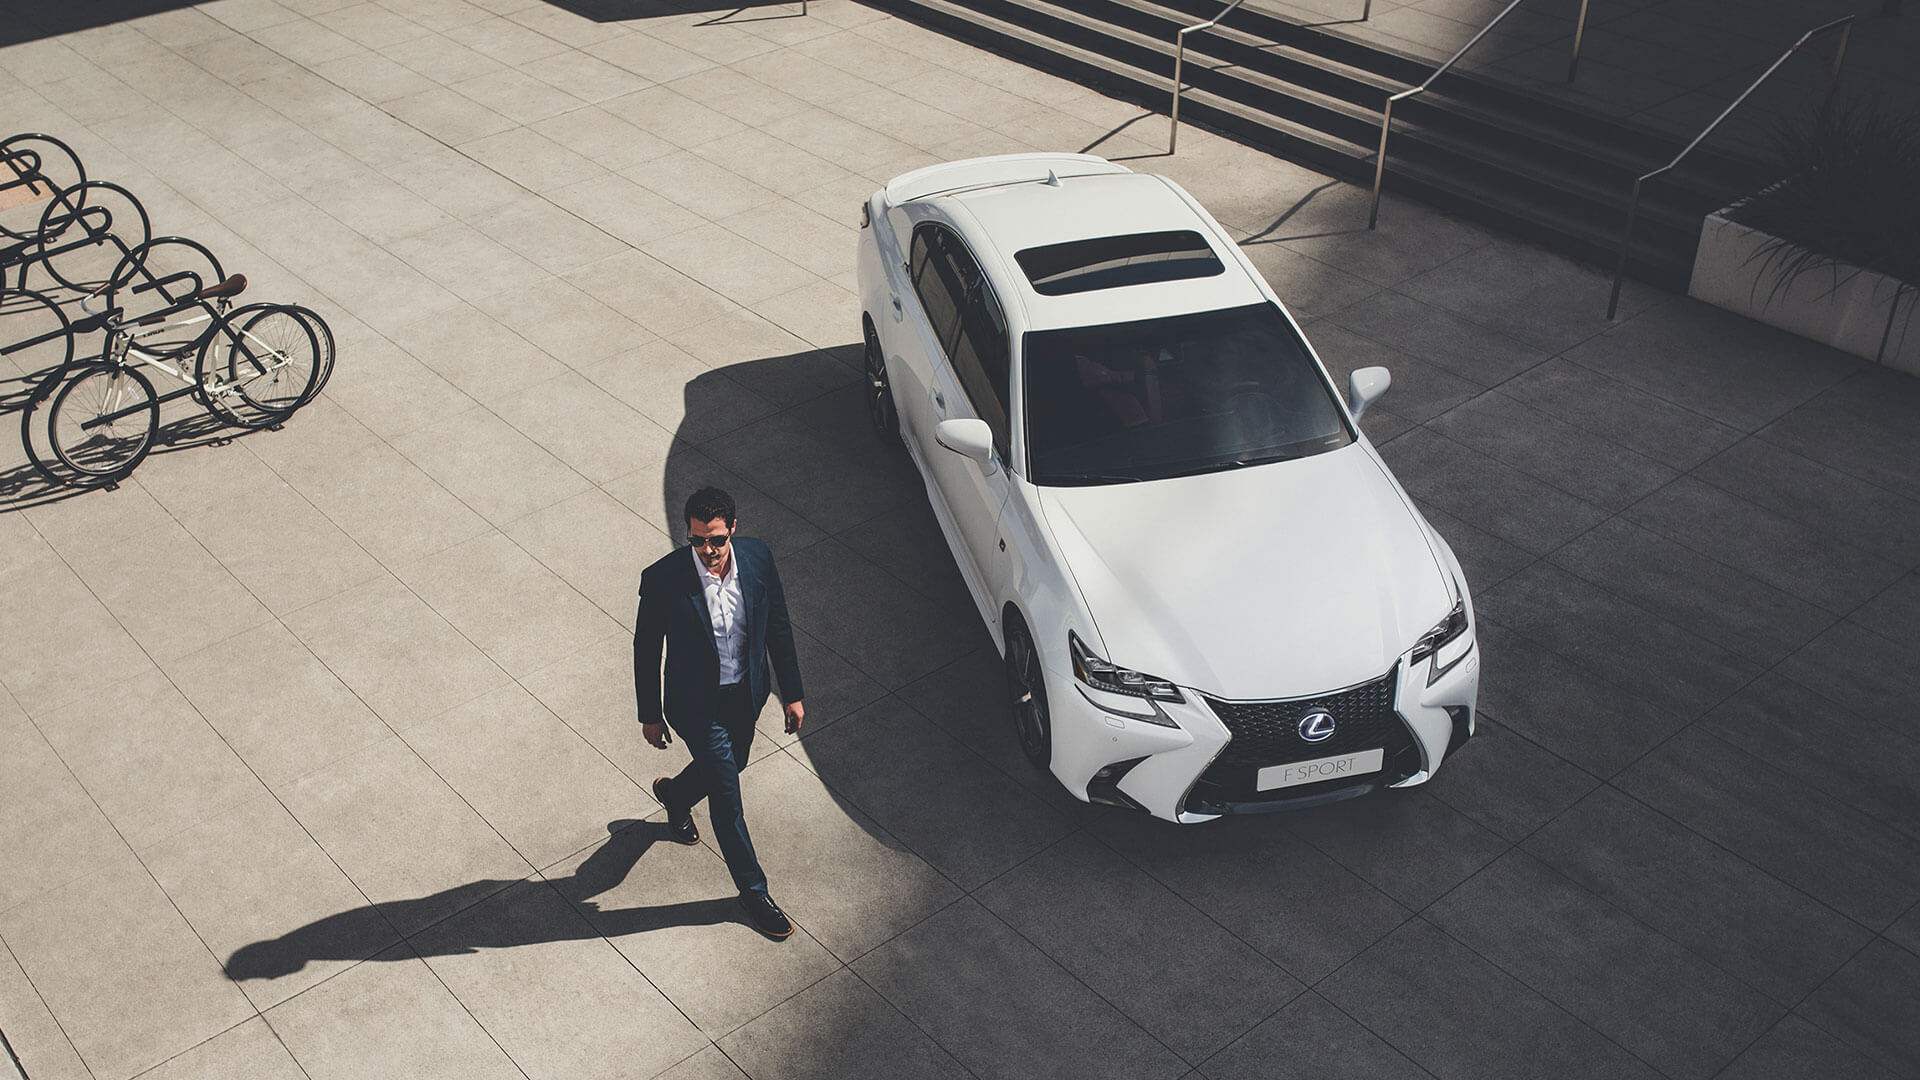 2017 lexus gs gallery 020 lifestyle